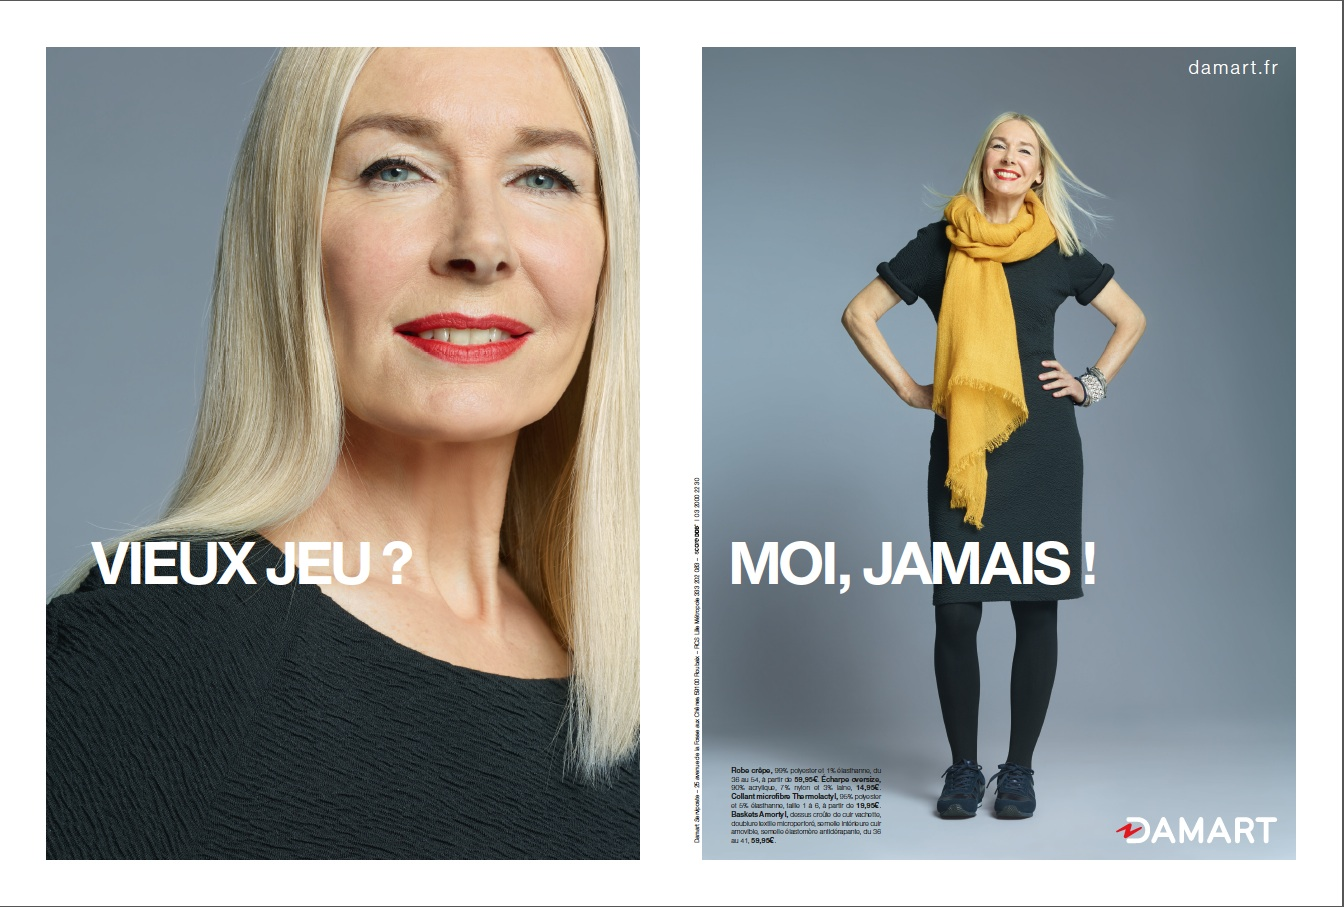 damart-publicite-marketing-senior-blasee-raisonnable-vieux-jeu-cliches-agence-score-ddb-2015-3